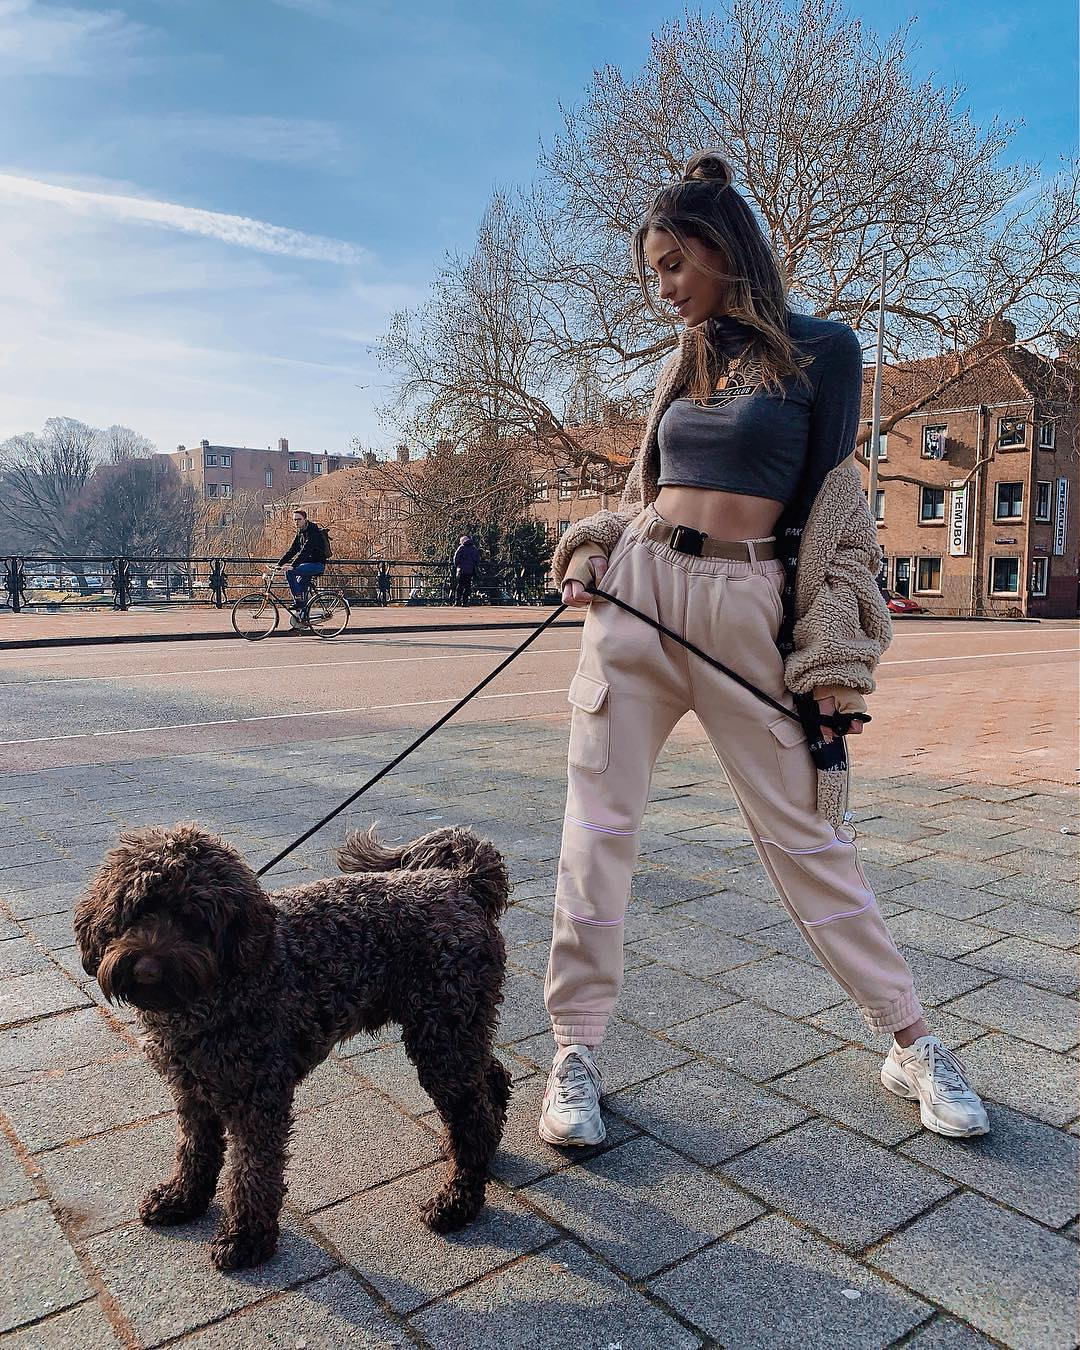 Best Casual Day Walk: Cargo Sweatpants, Crop Top And White Sneakers 2020